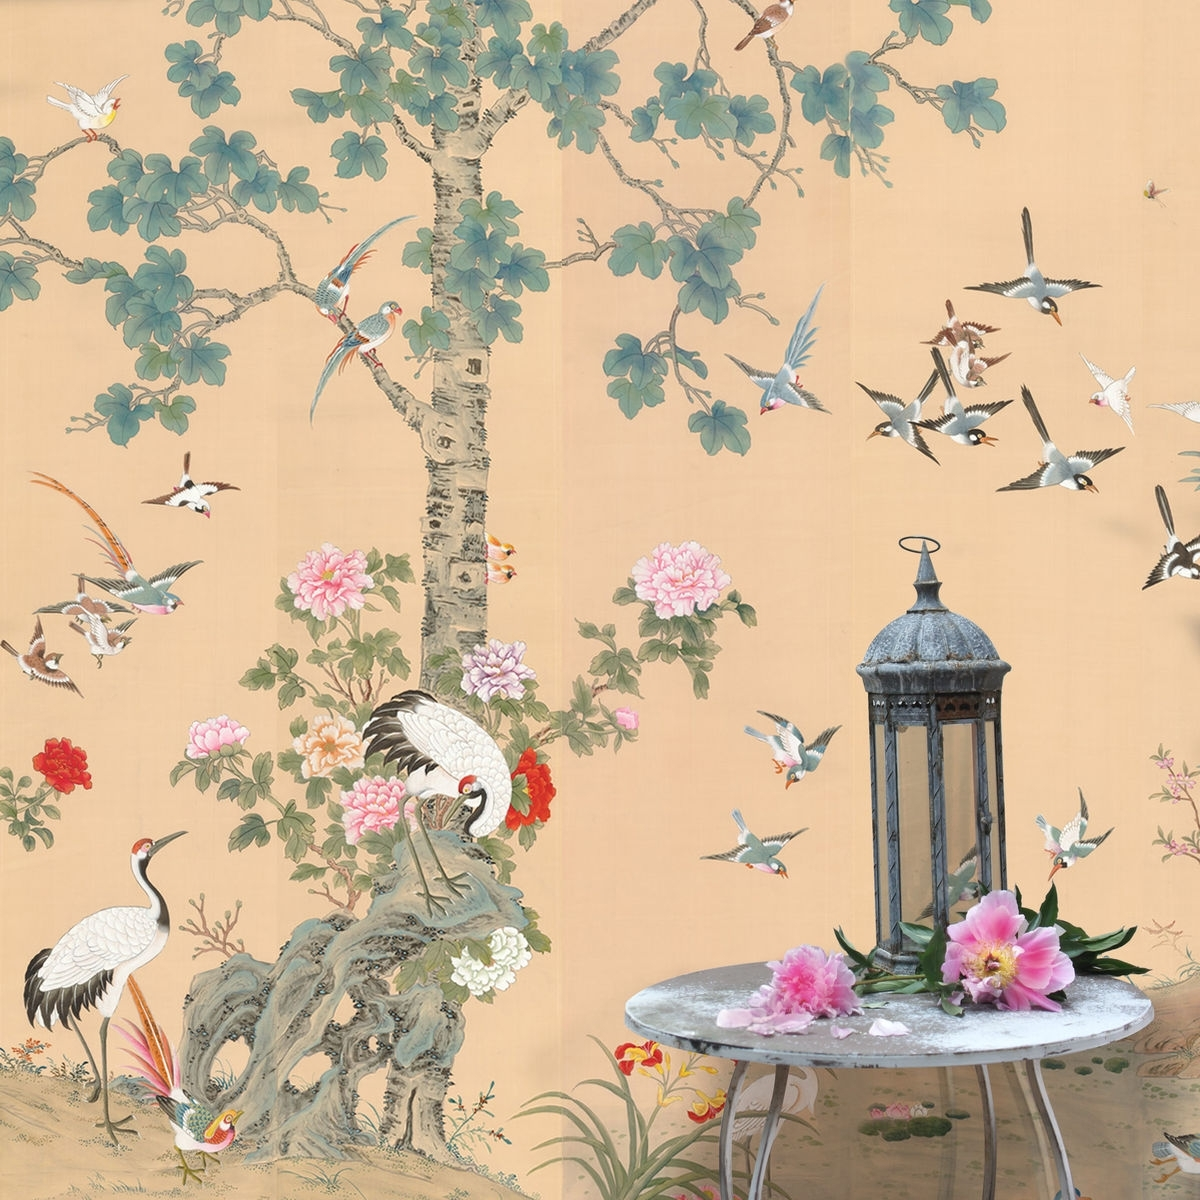 Well Known Chinoiserie Wall Art In Wall Art Ideas Design : Garden Interior Chinoiserie Wall Art (View 15 of 15)